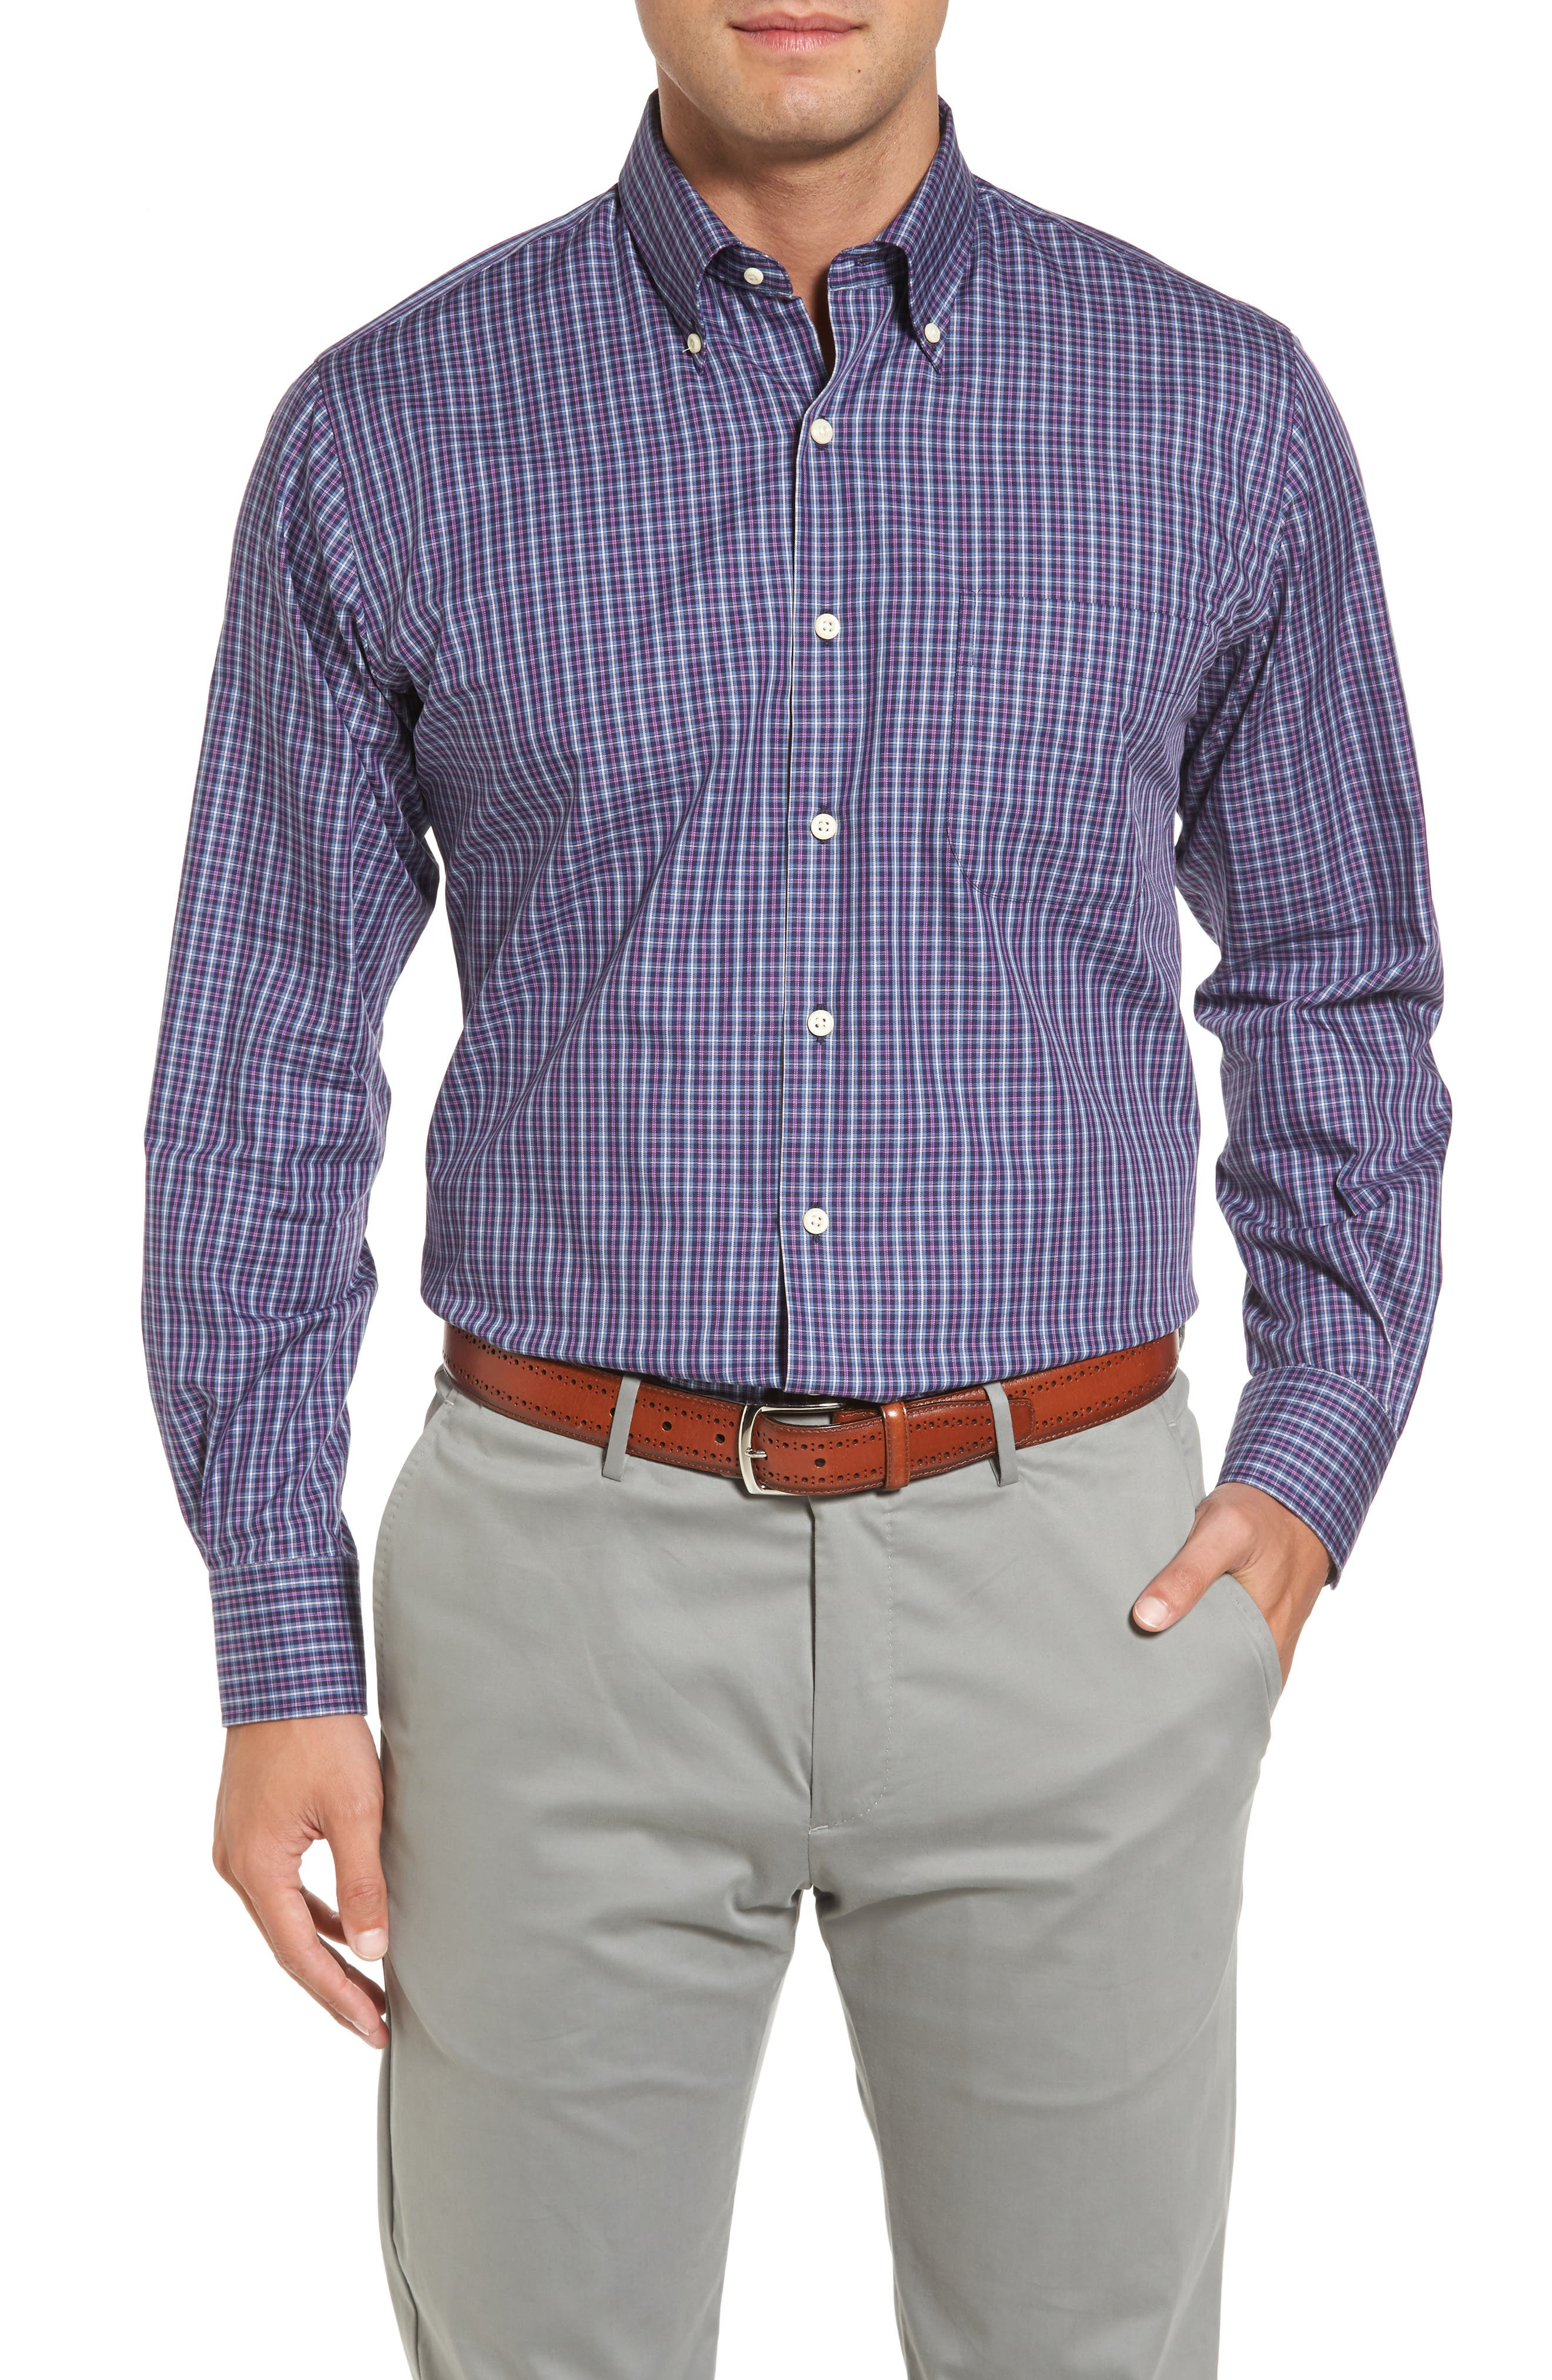 Hillock Regular Fit Plaid Sport Shirt,                         Main,                         color, Moon Blue